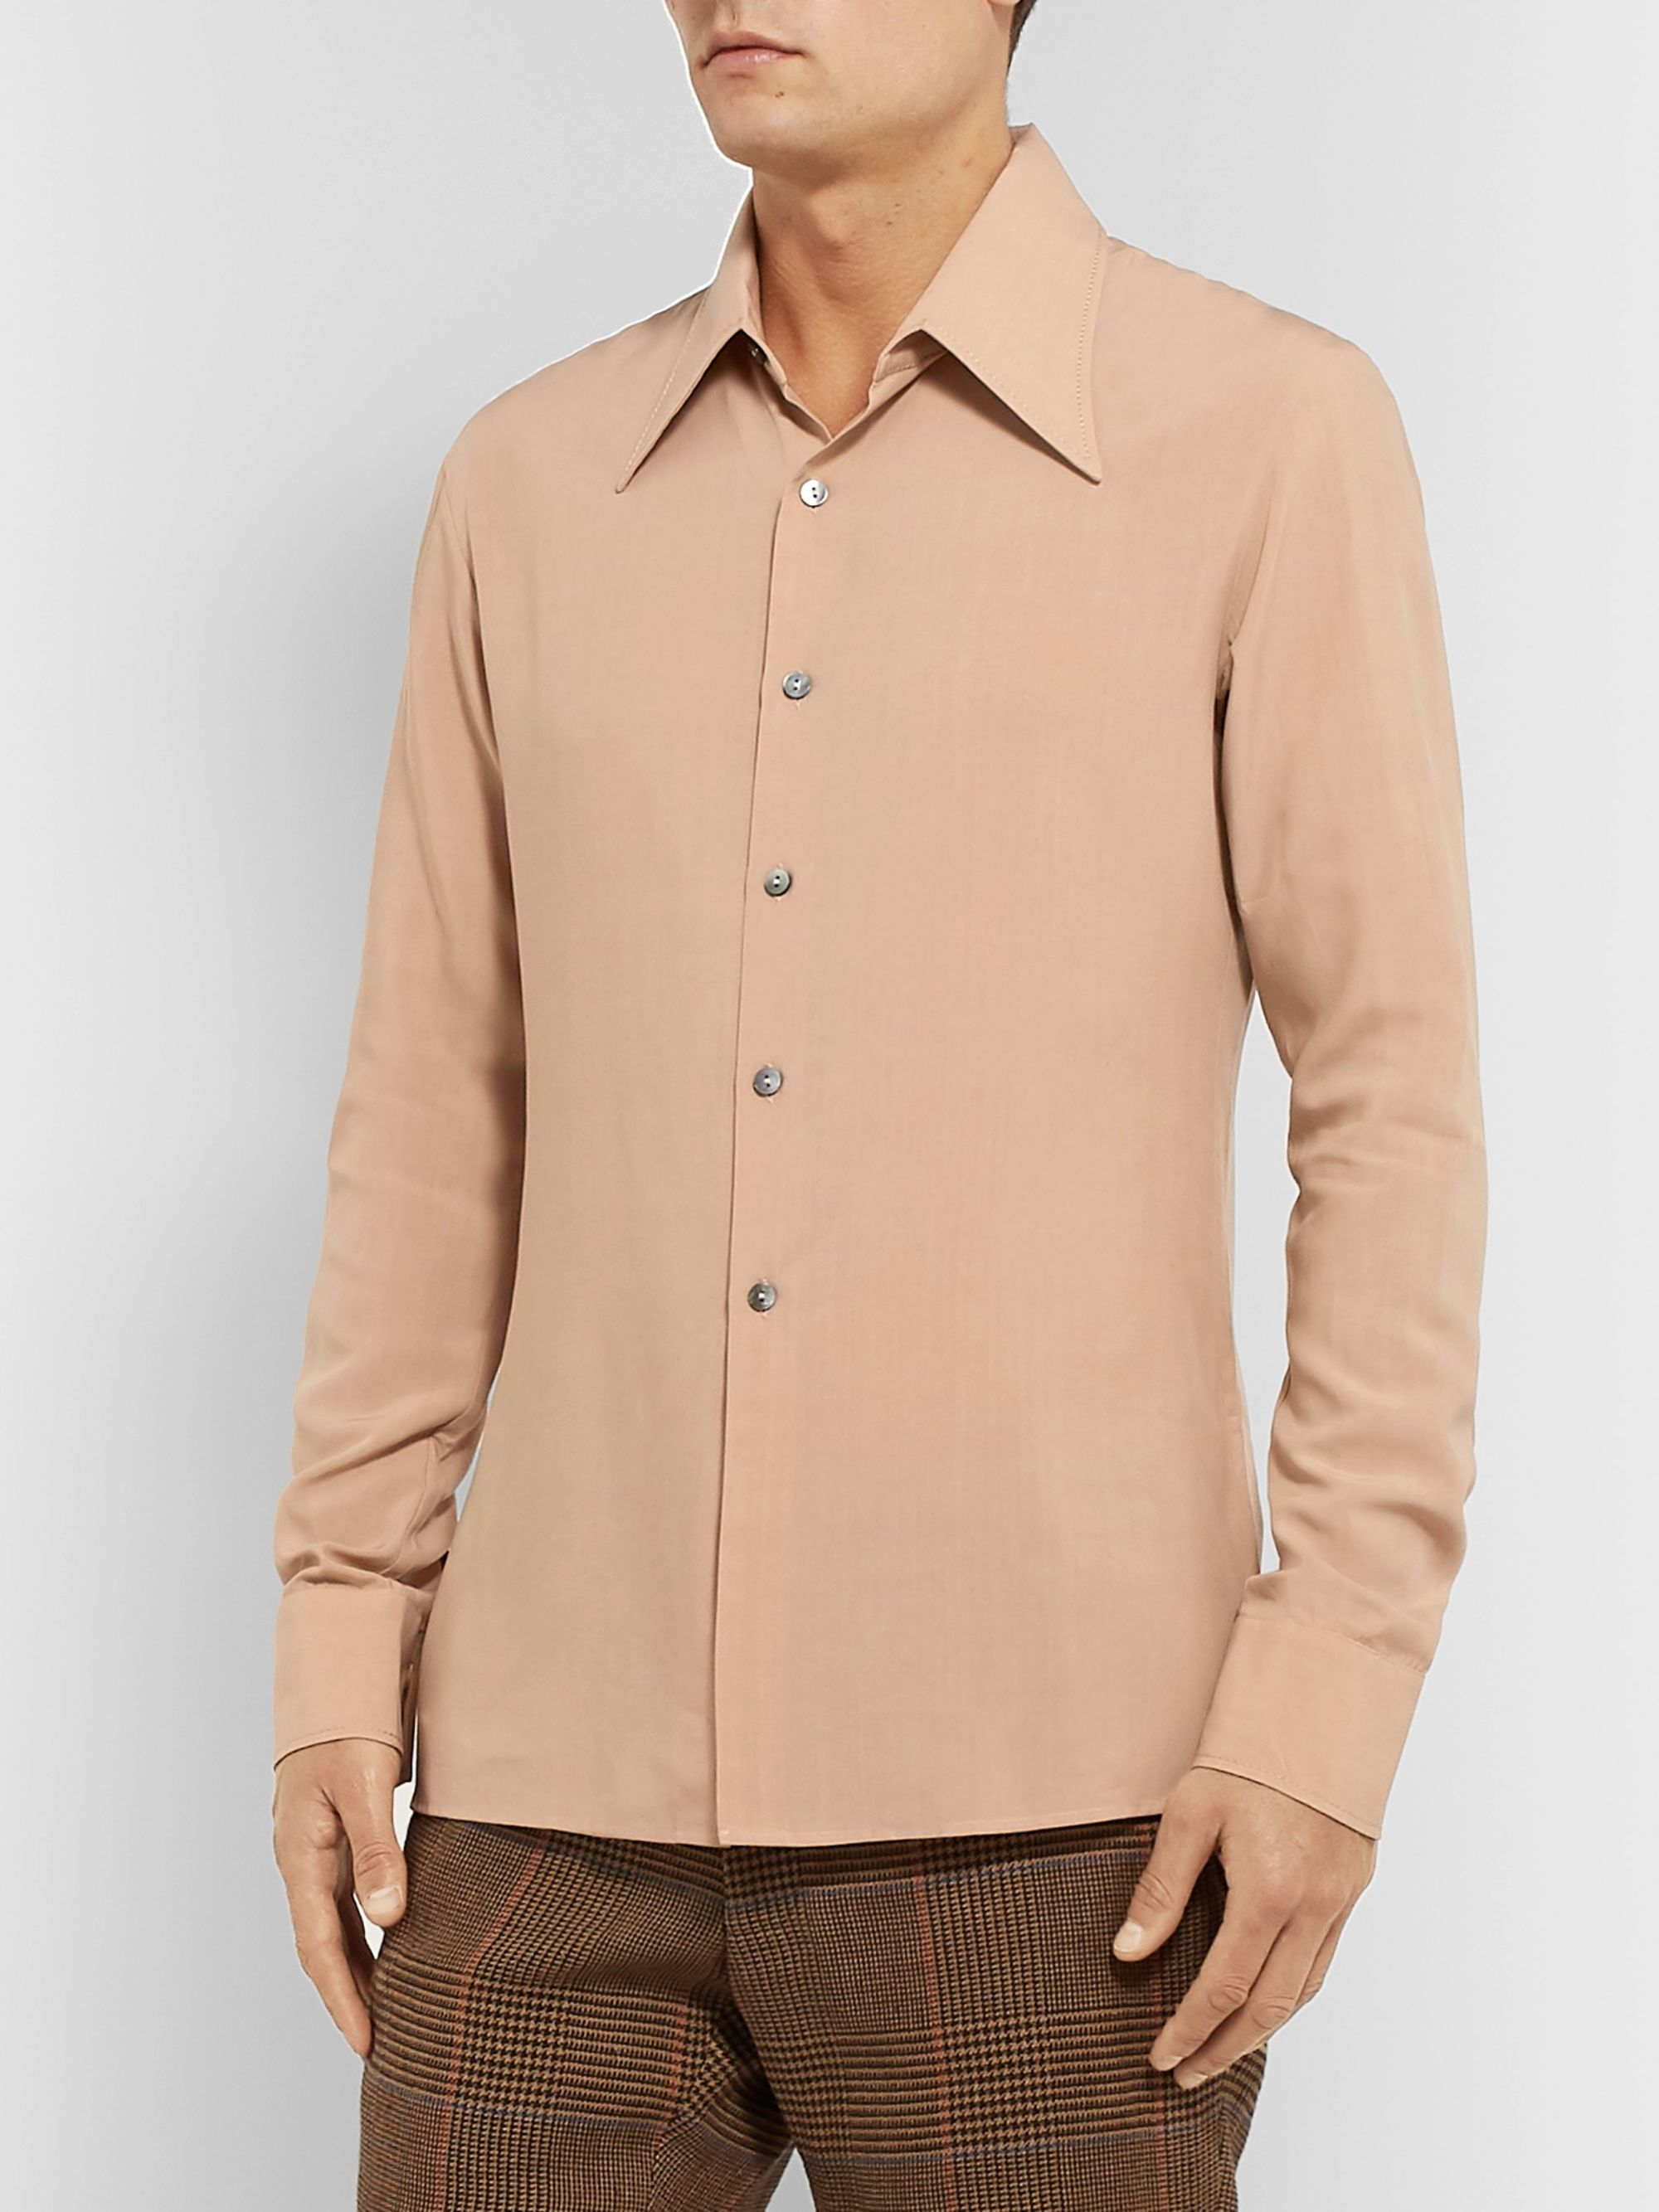 Maison Margiela Slim-Fit Poplin Shirt